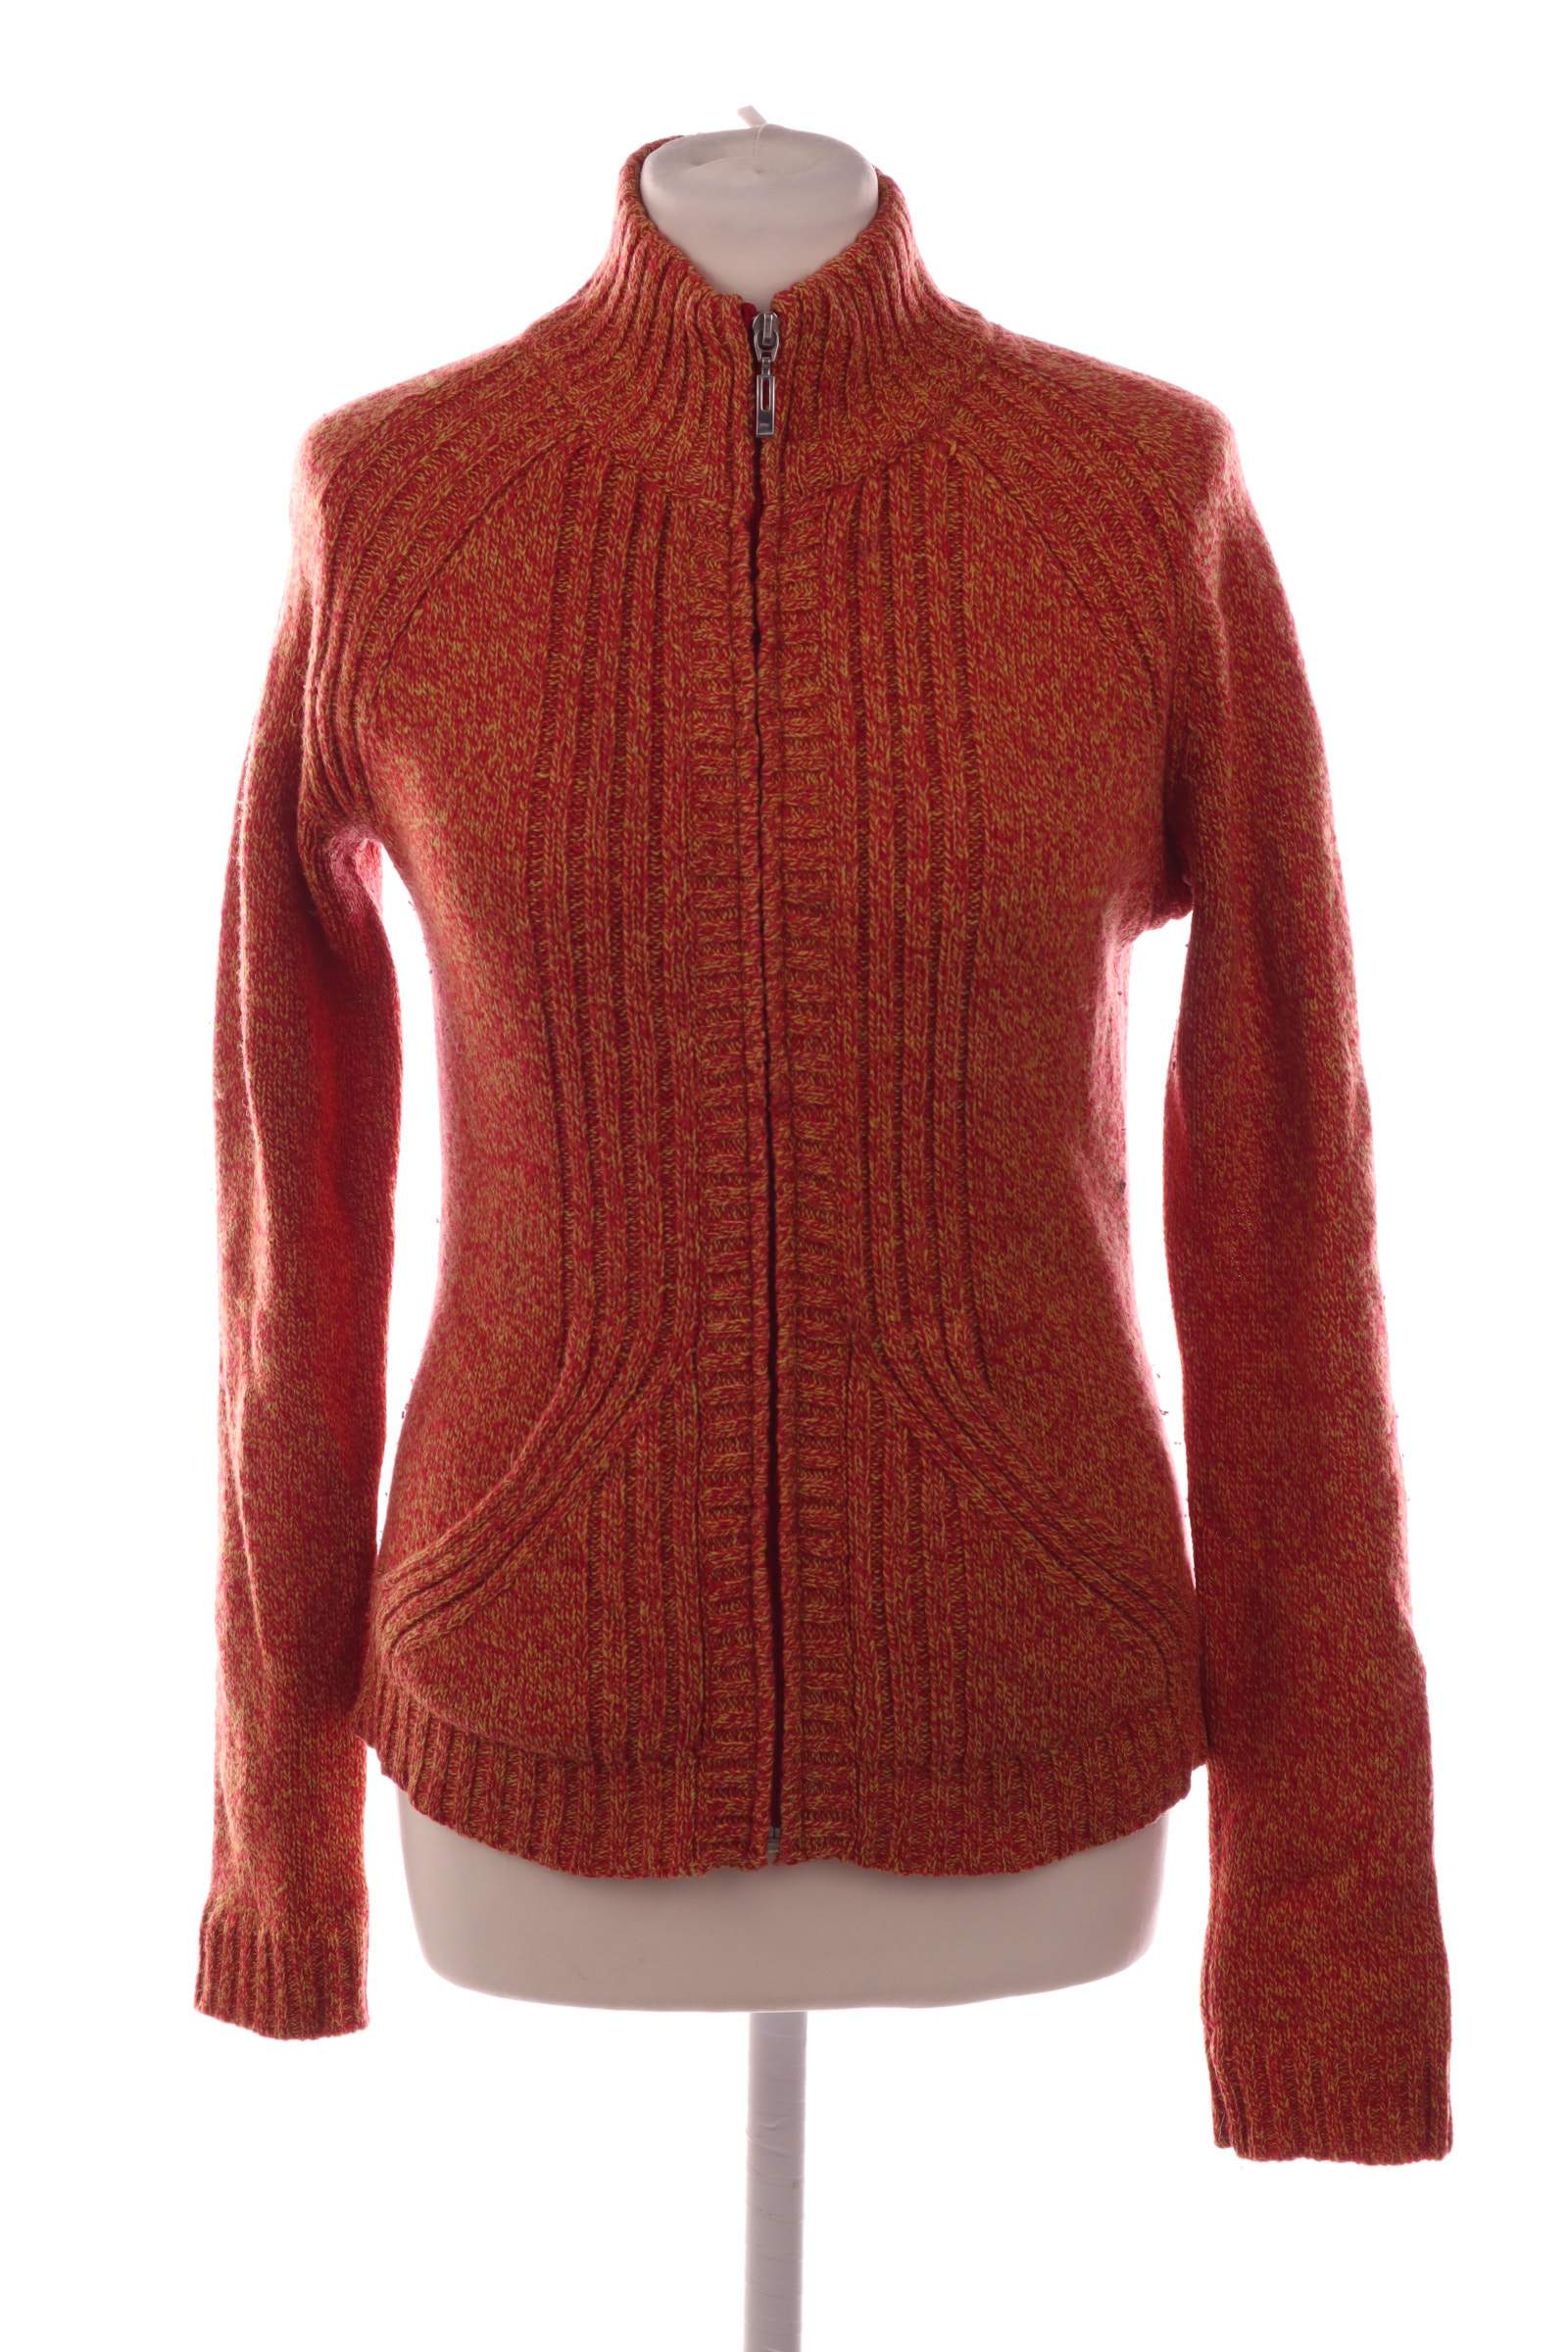 Sela Orange Sweater